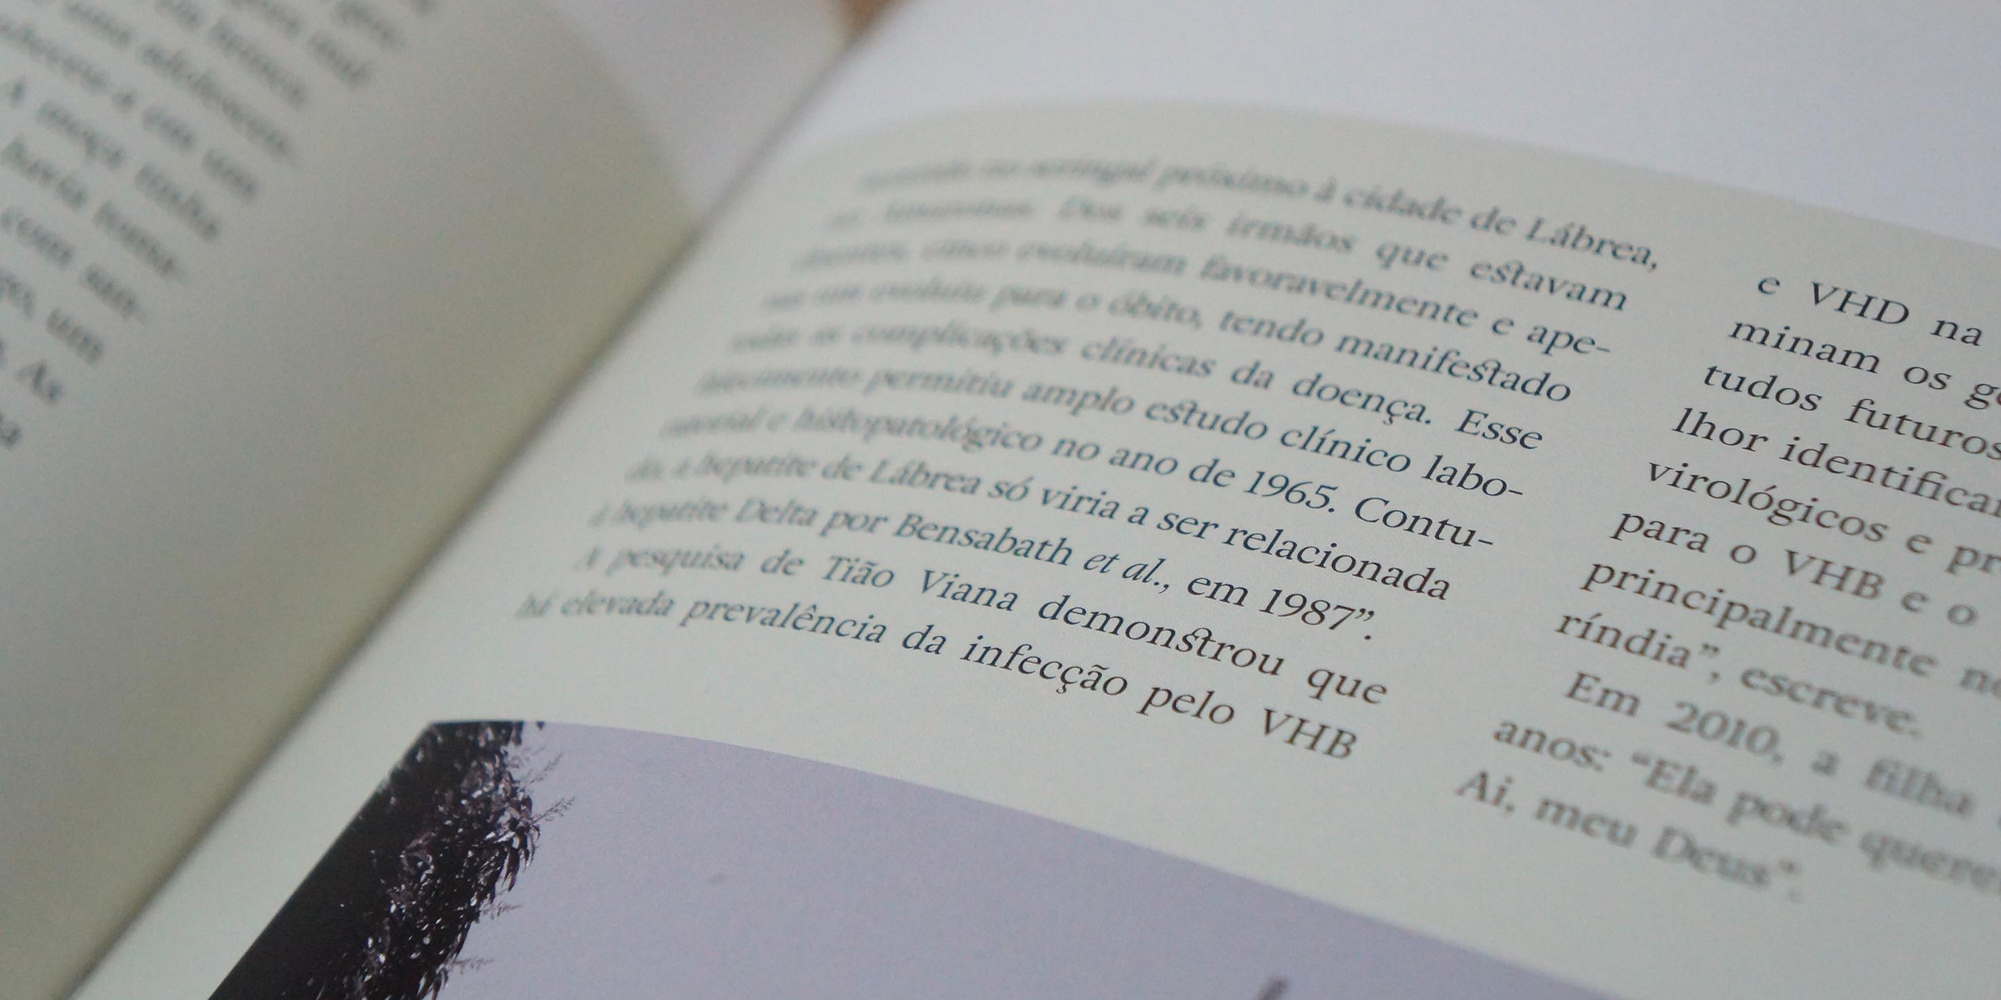 Detail of Adriane Text in use in *Rumores do Silêncio* designed by Daniel Justi.